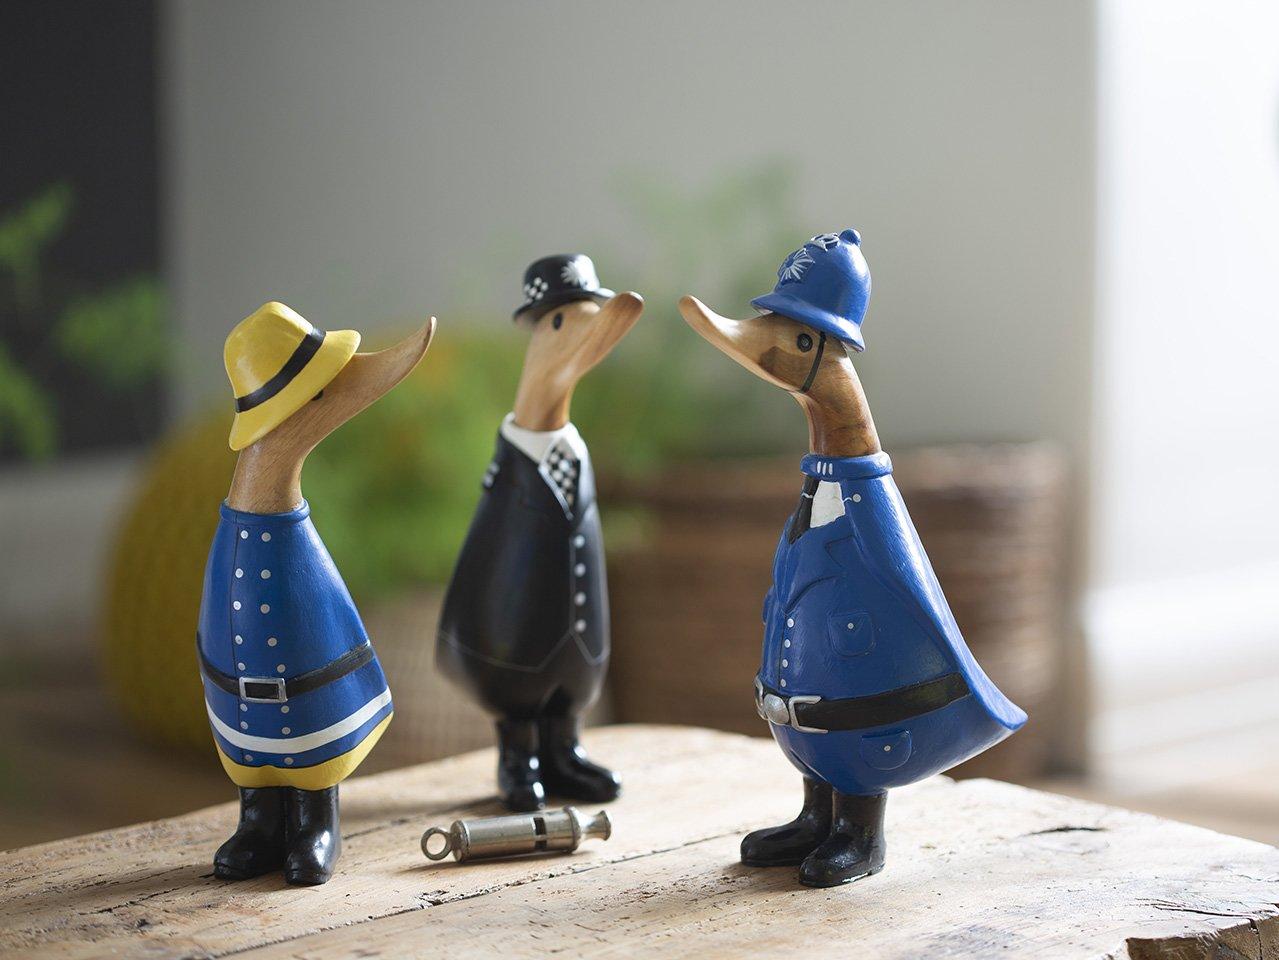 Group of police officer ducks - gifts for workaholics